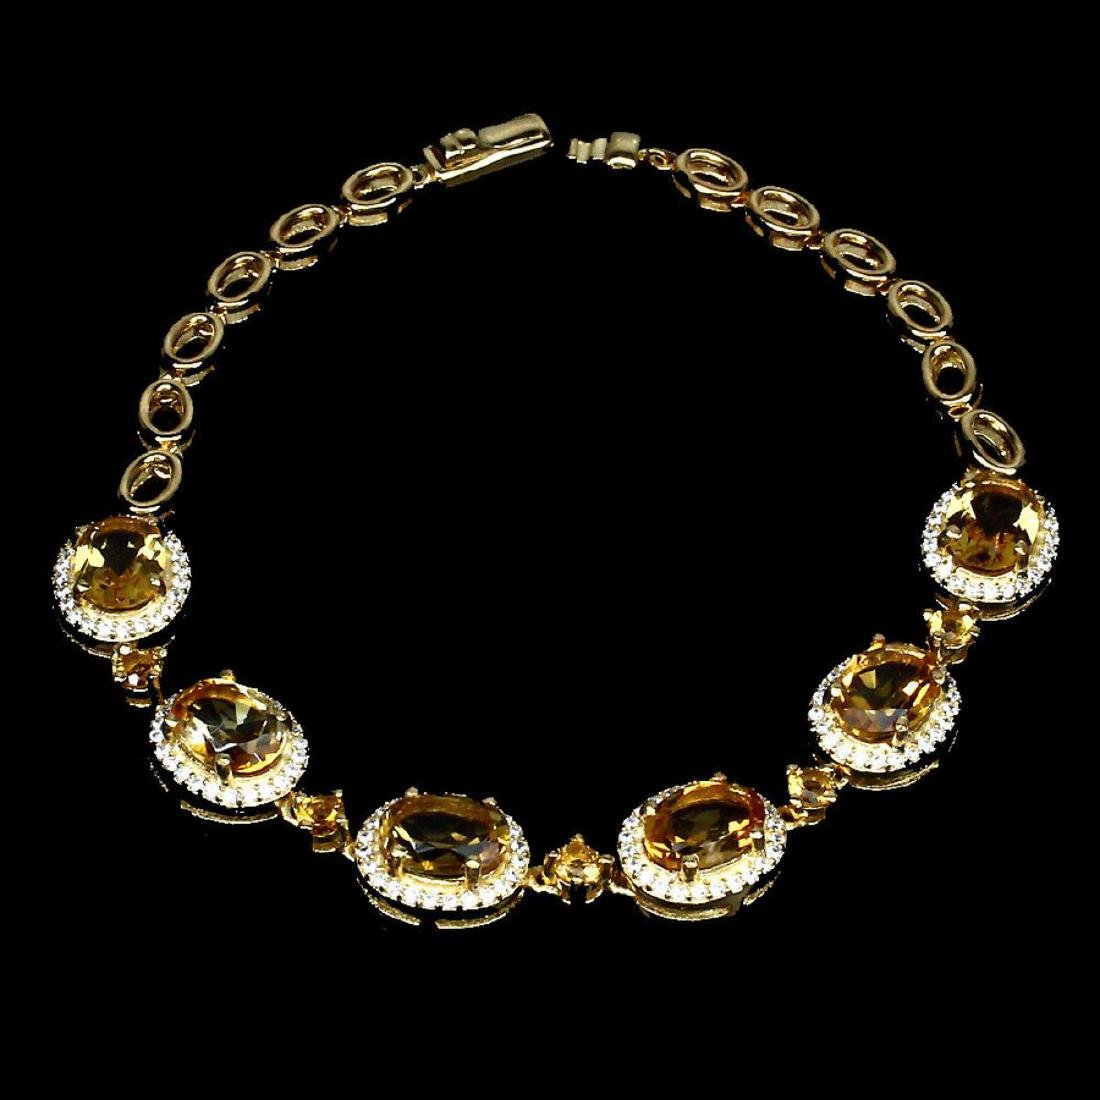 Natural 8x6mm Top Rich Yellow Citrine Bracelet - 2